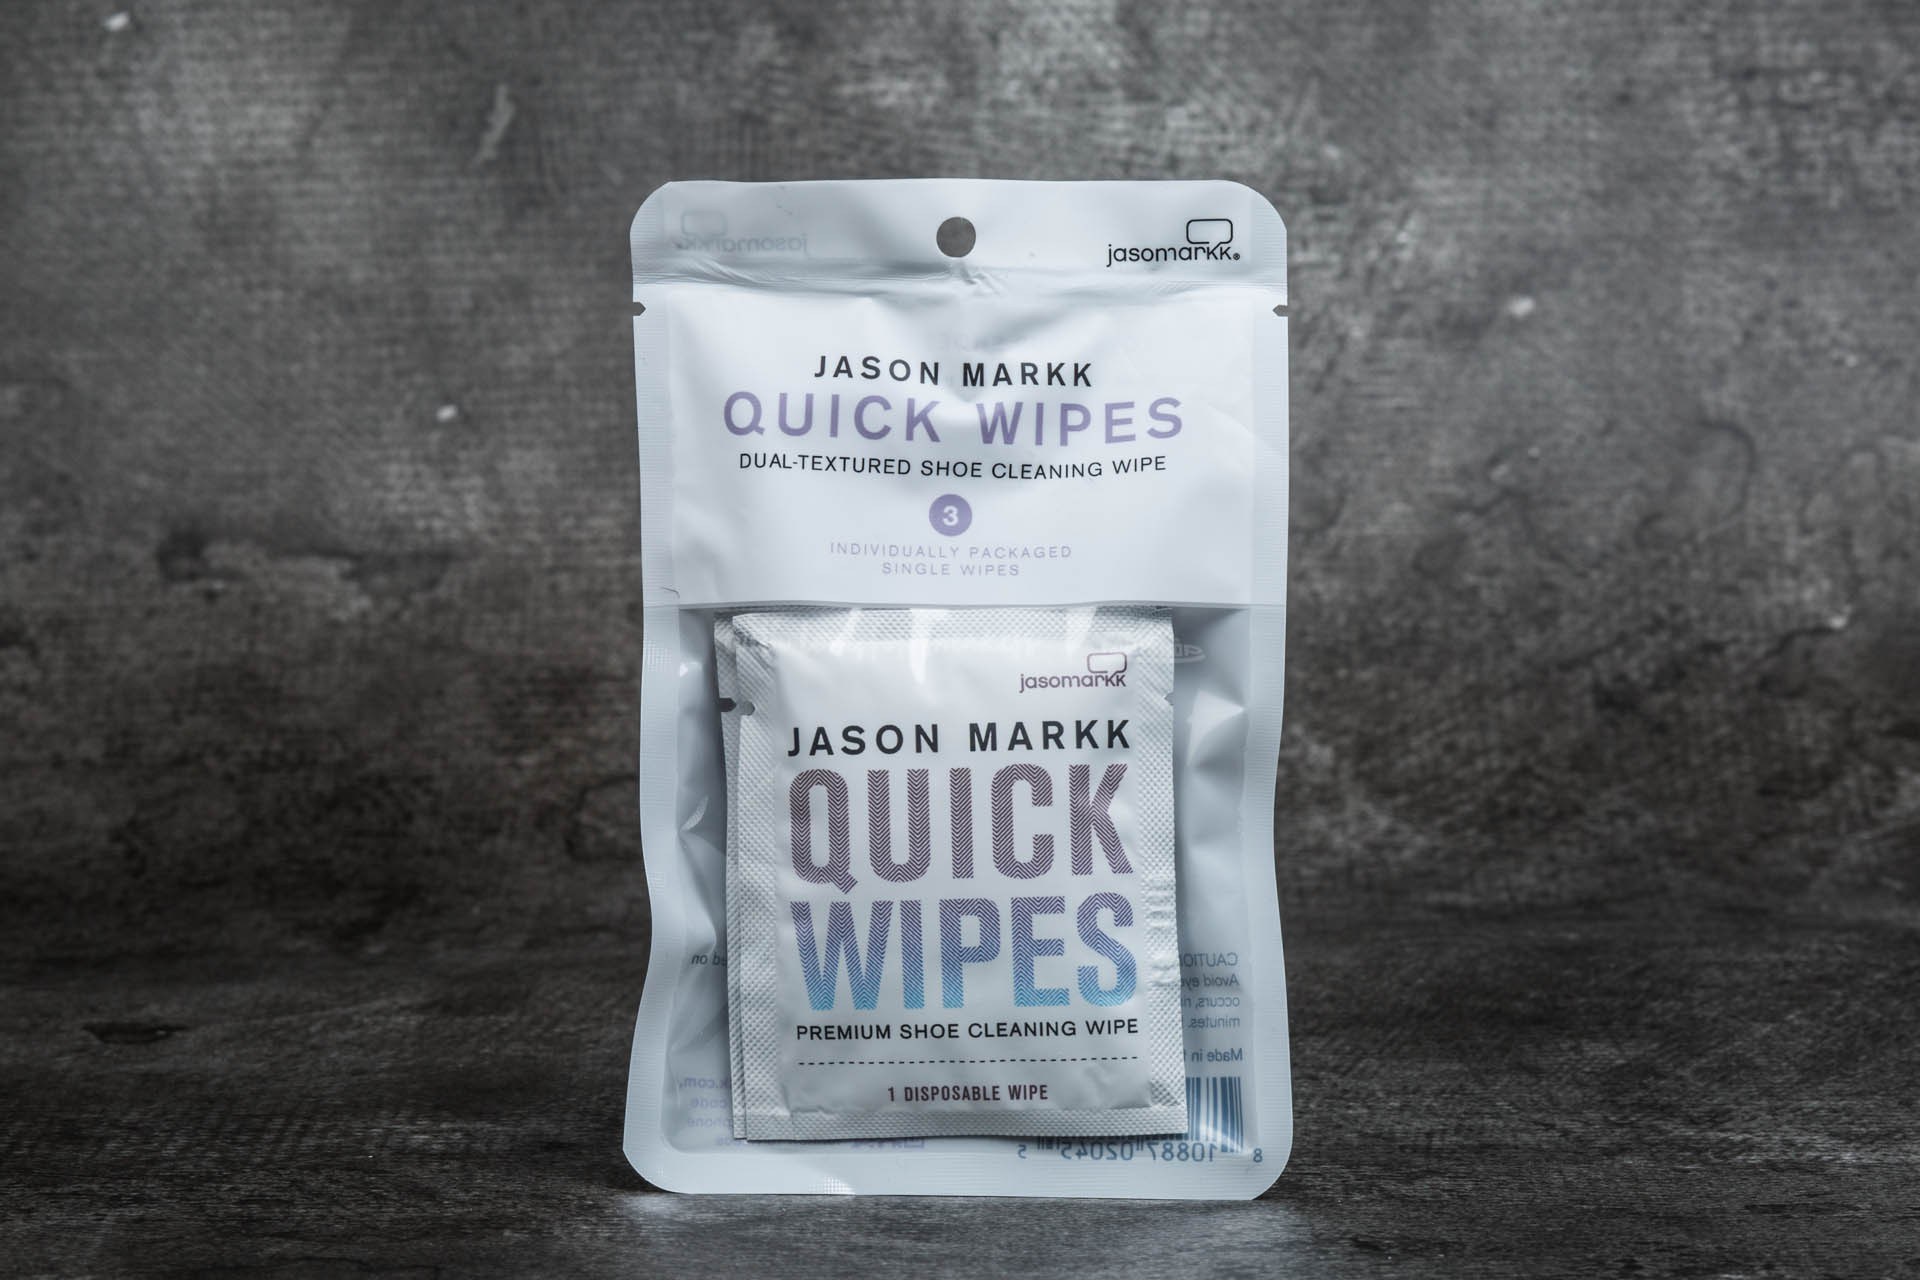 Jason Markk Quick Wipes - Pack of 3